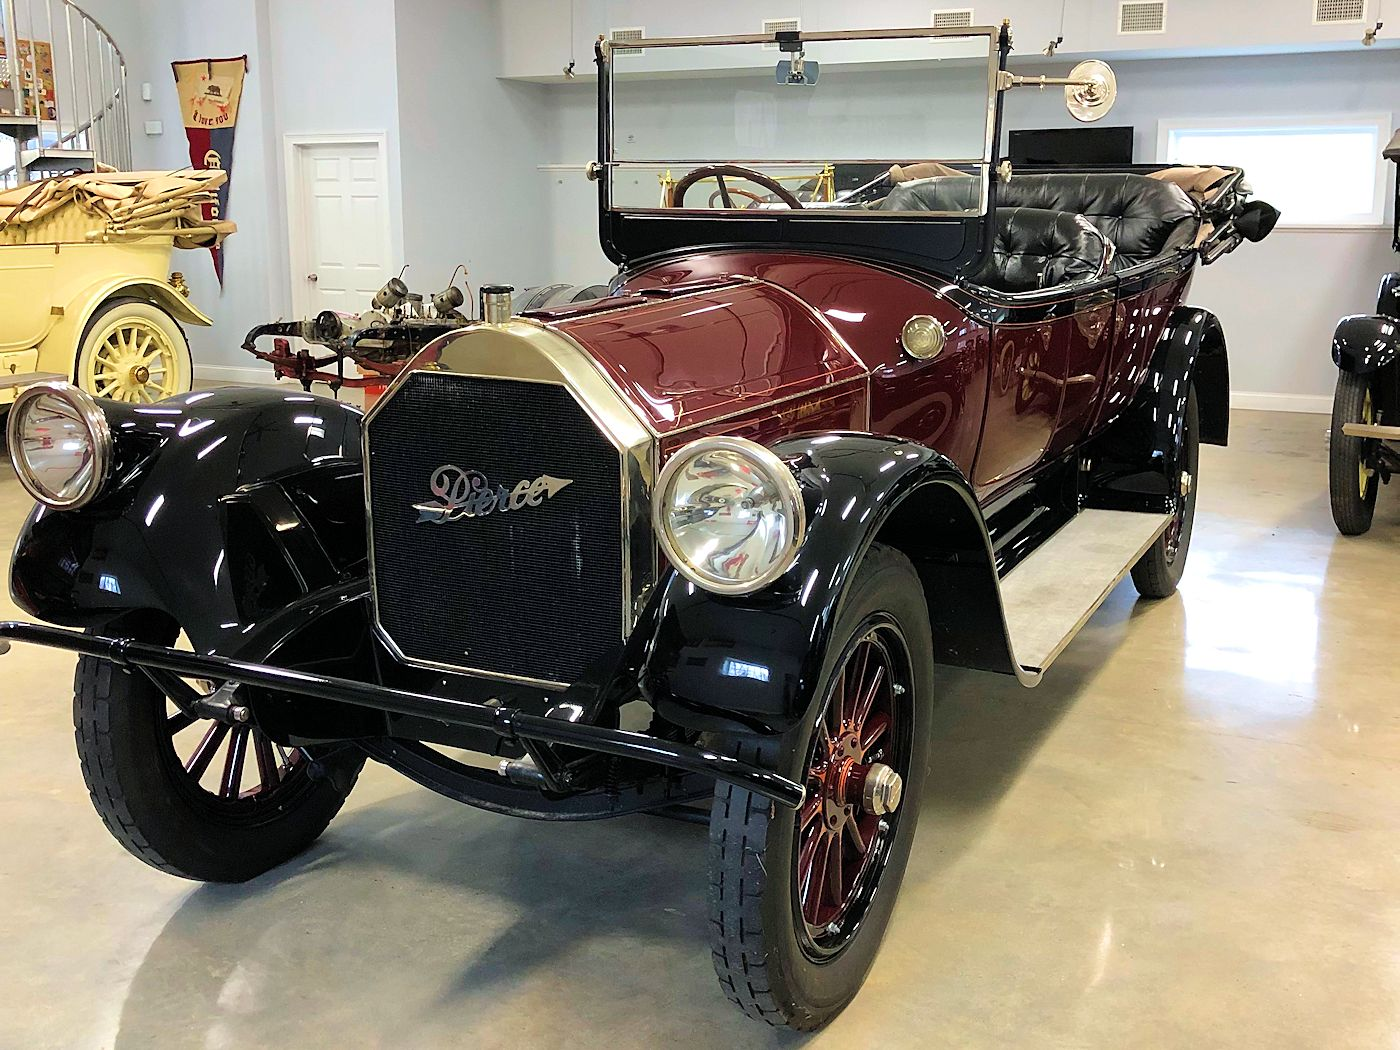 1916 Pierce-Arrow Model 48 - 7 Passenger Touring